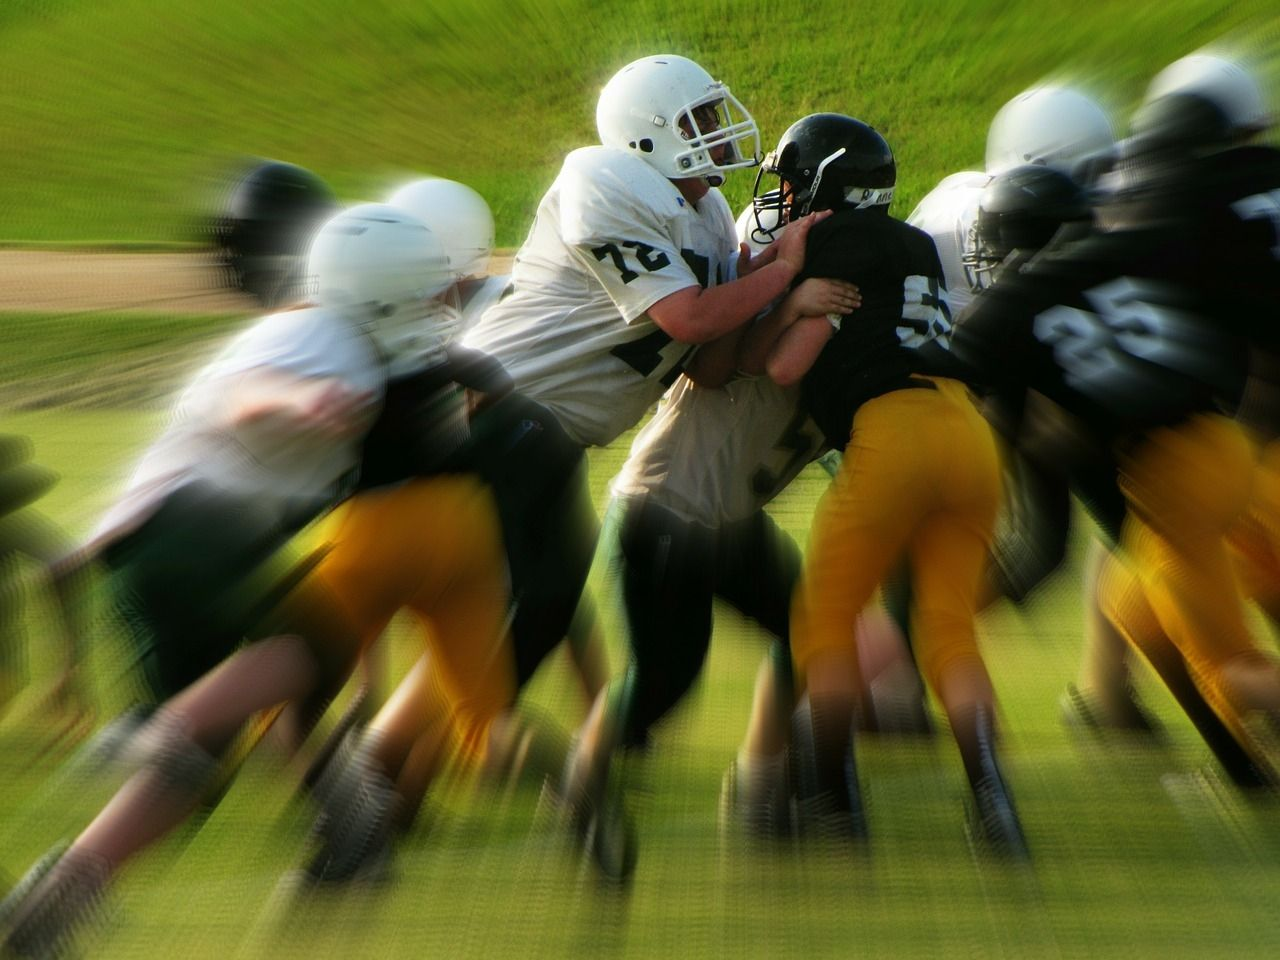 Over involved parents in sports Sports, Football, Youth